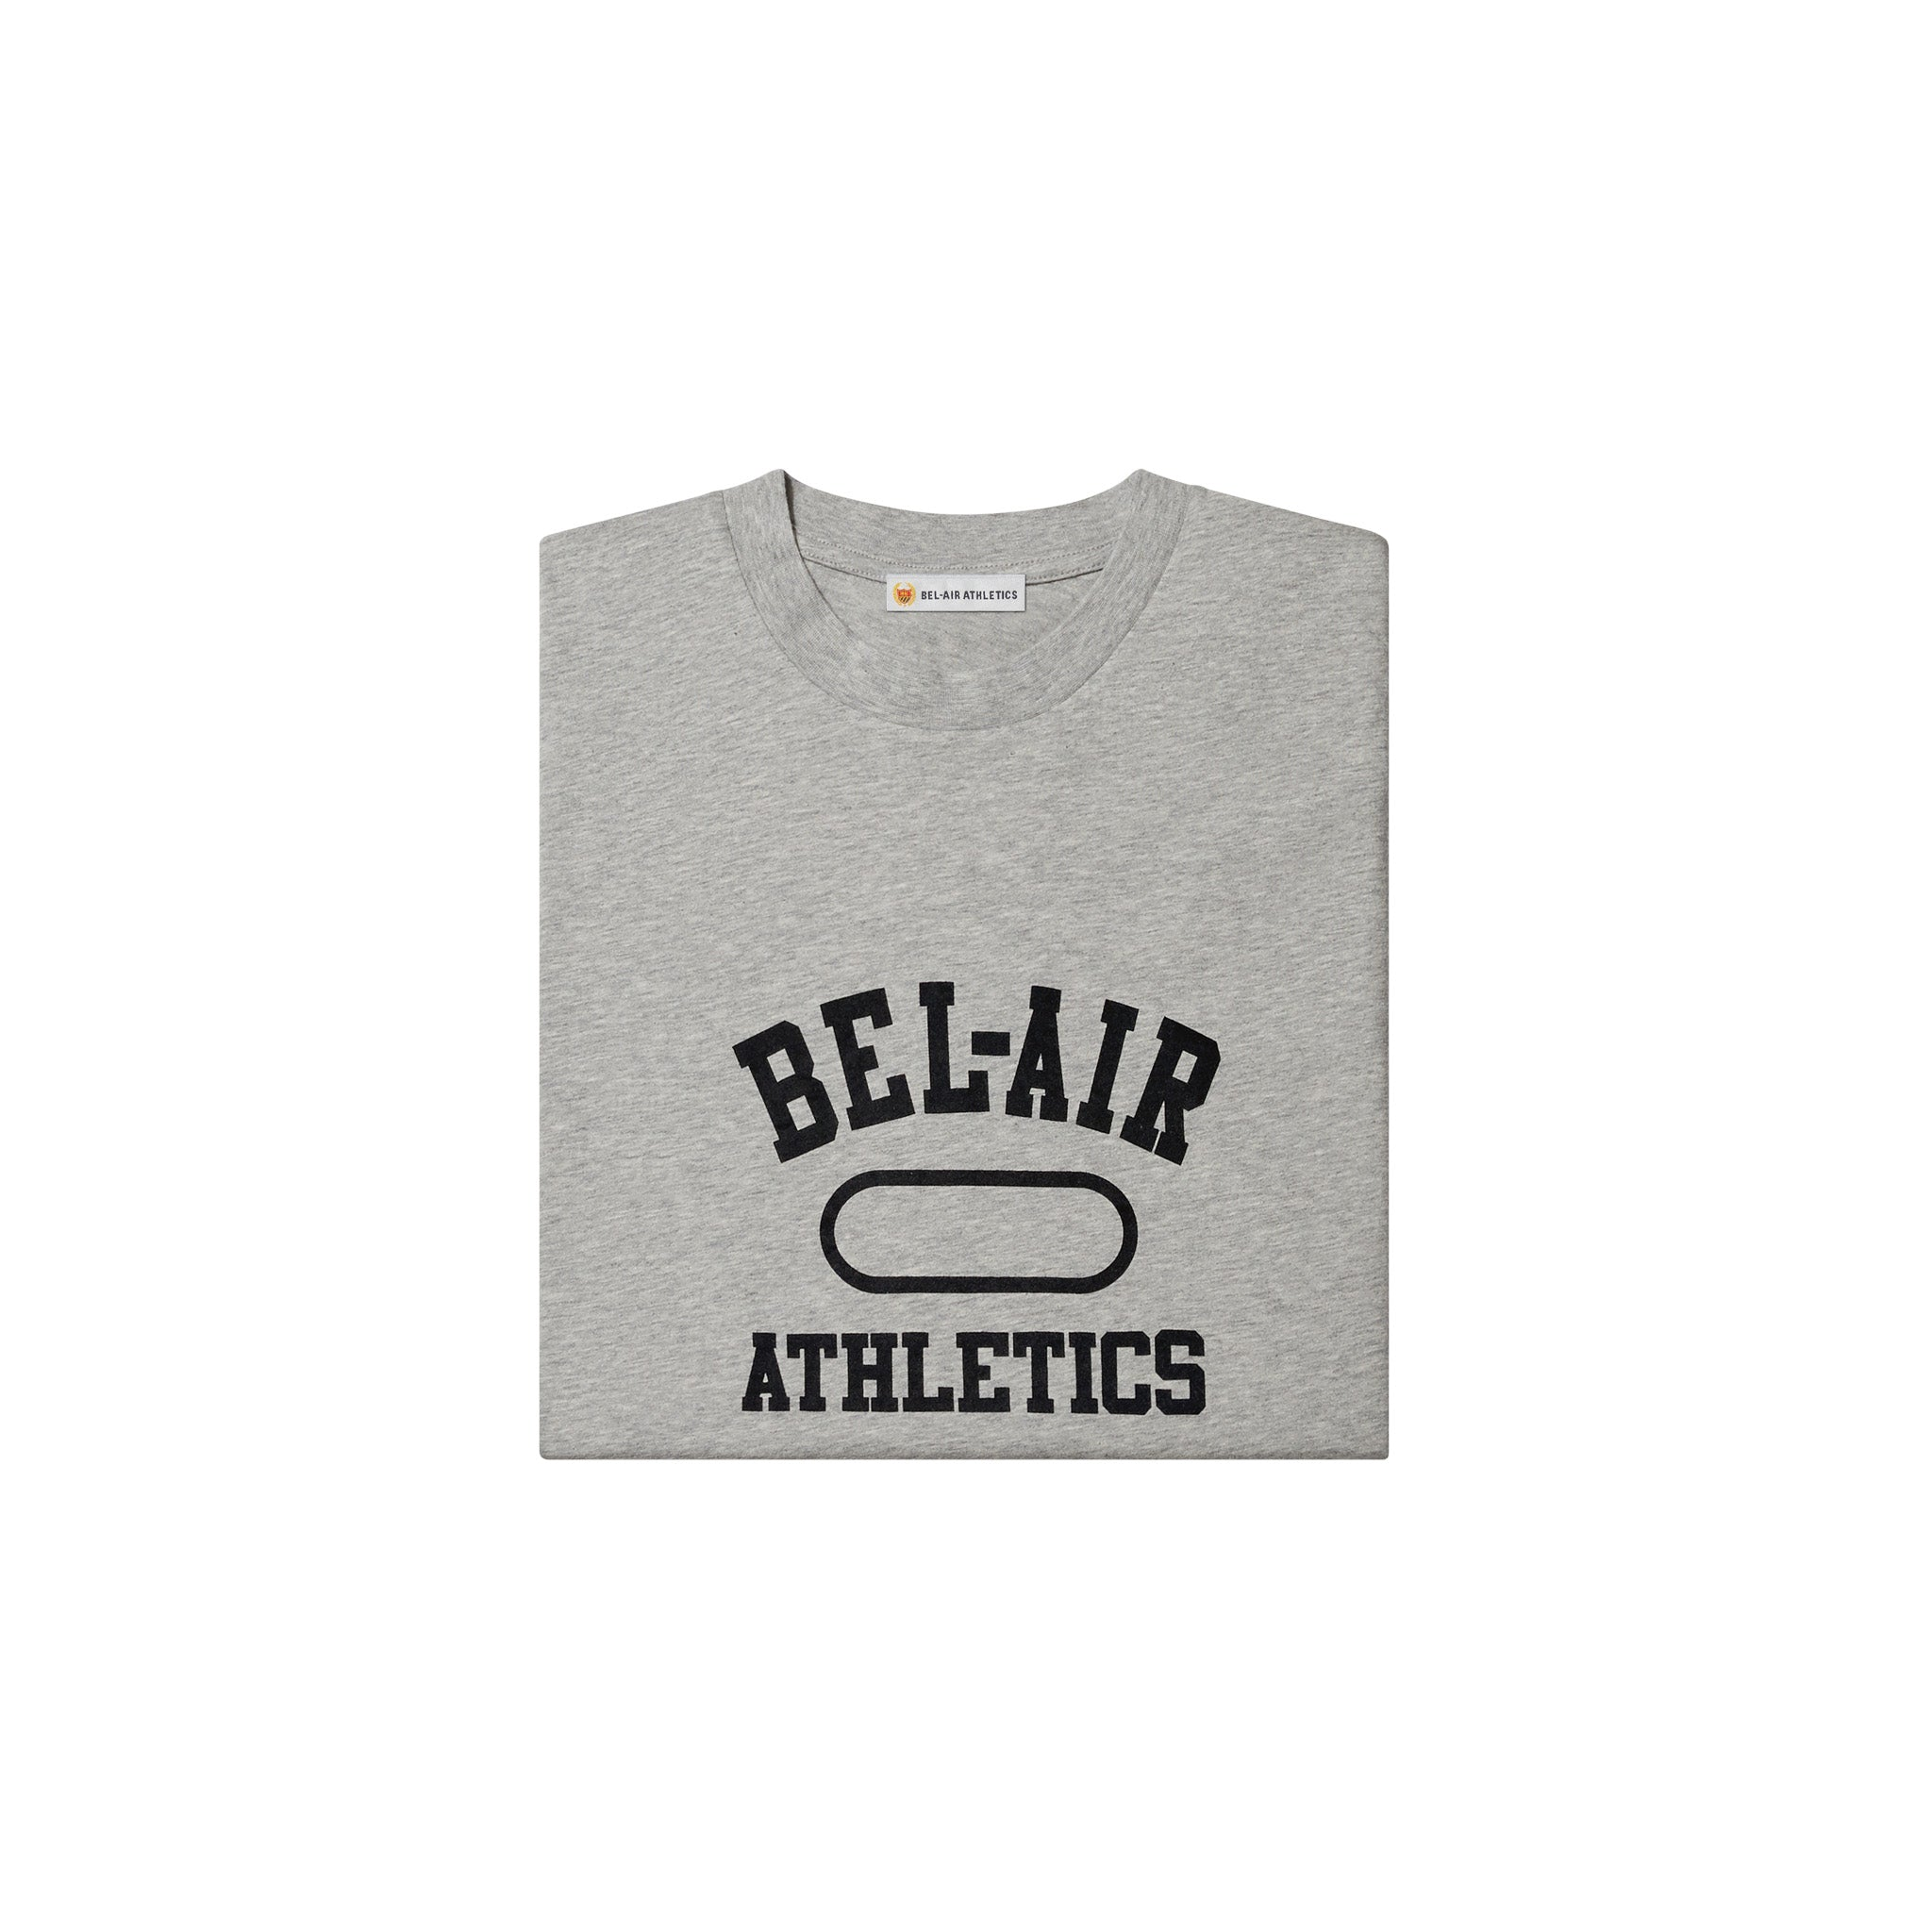 Gym Logo T-Shirt - Athletic Grey with Bel-Air Blue print